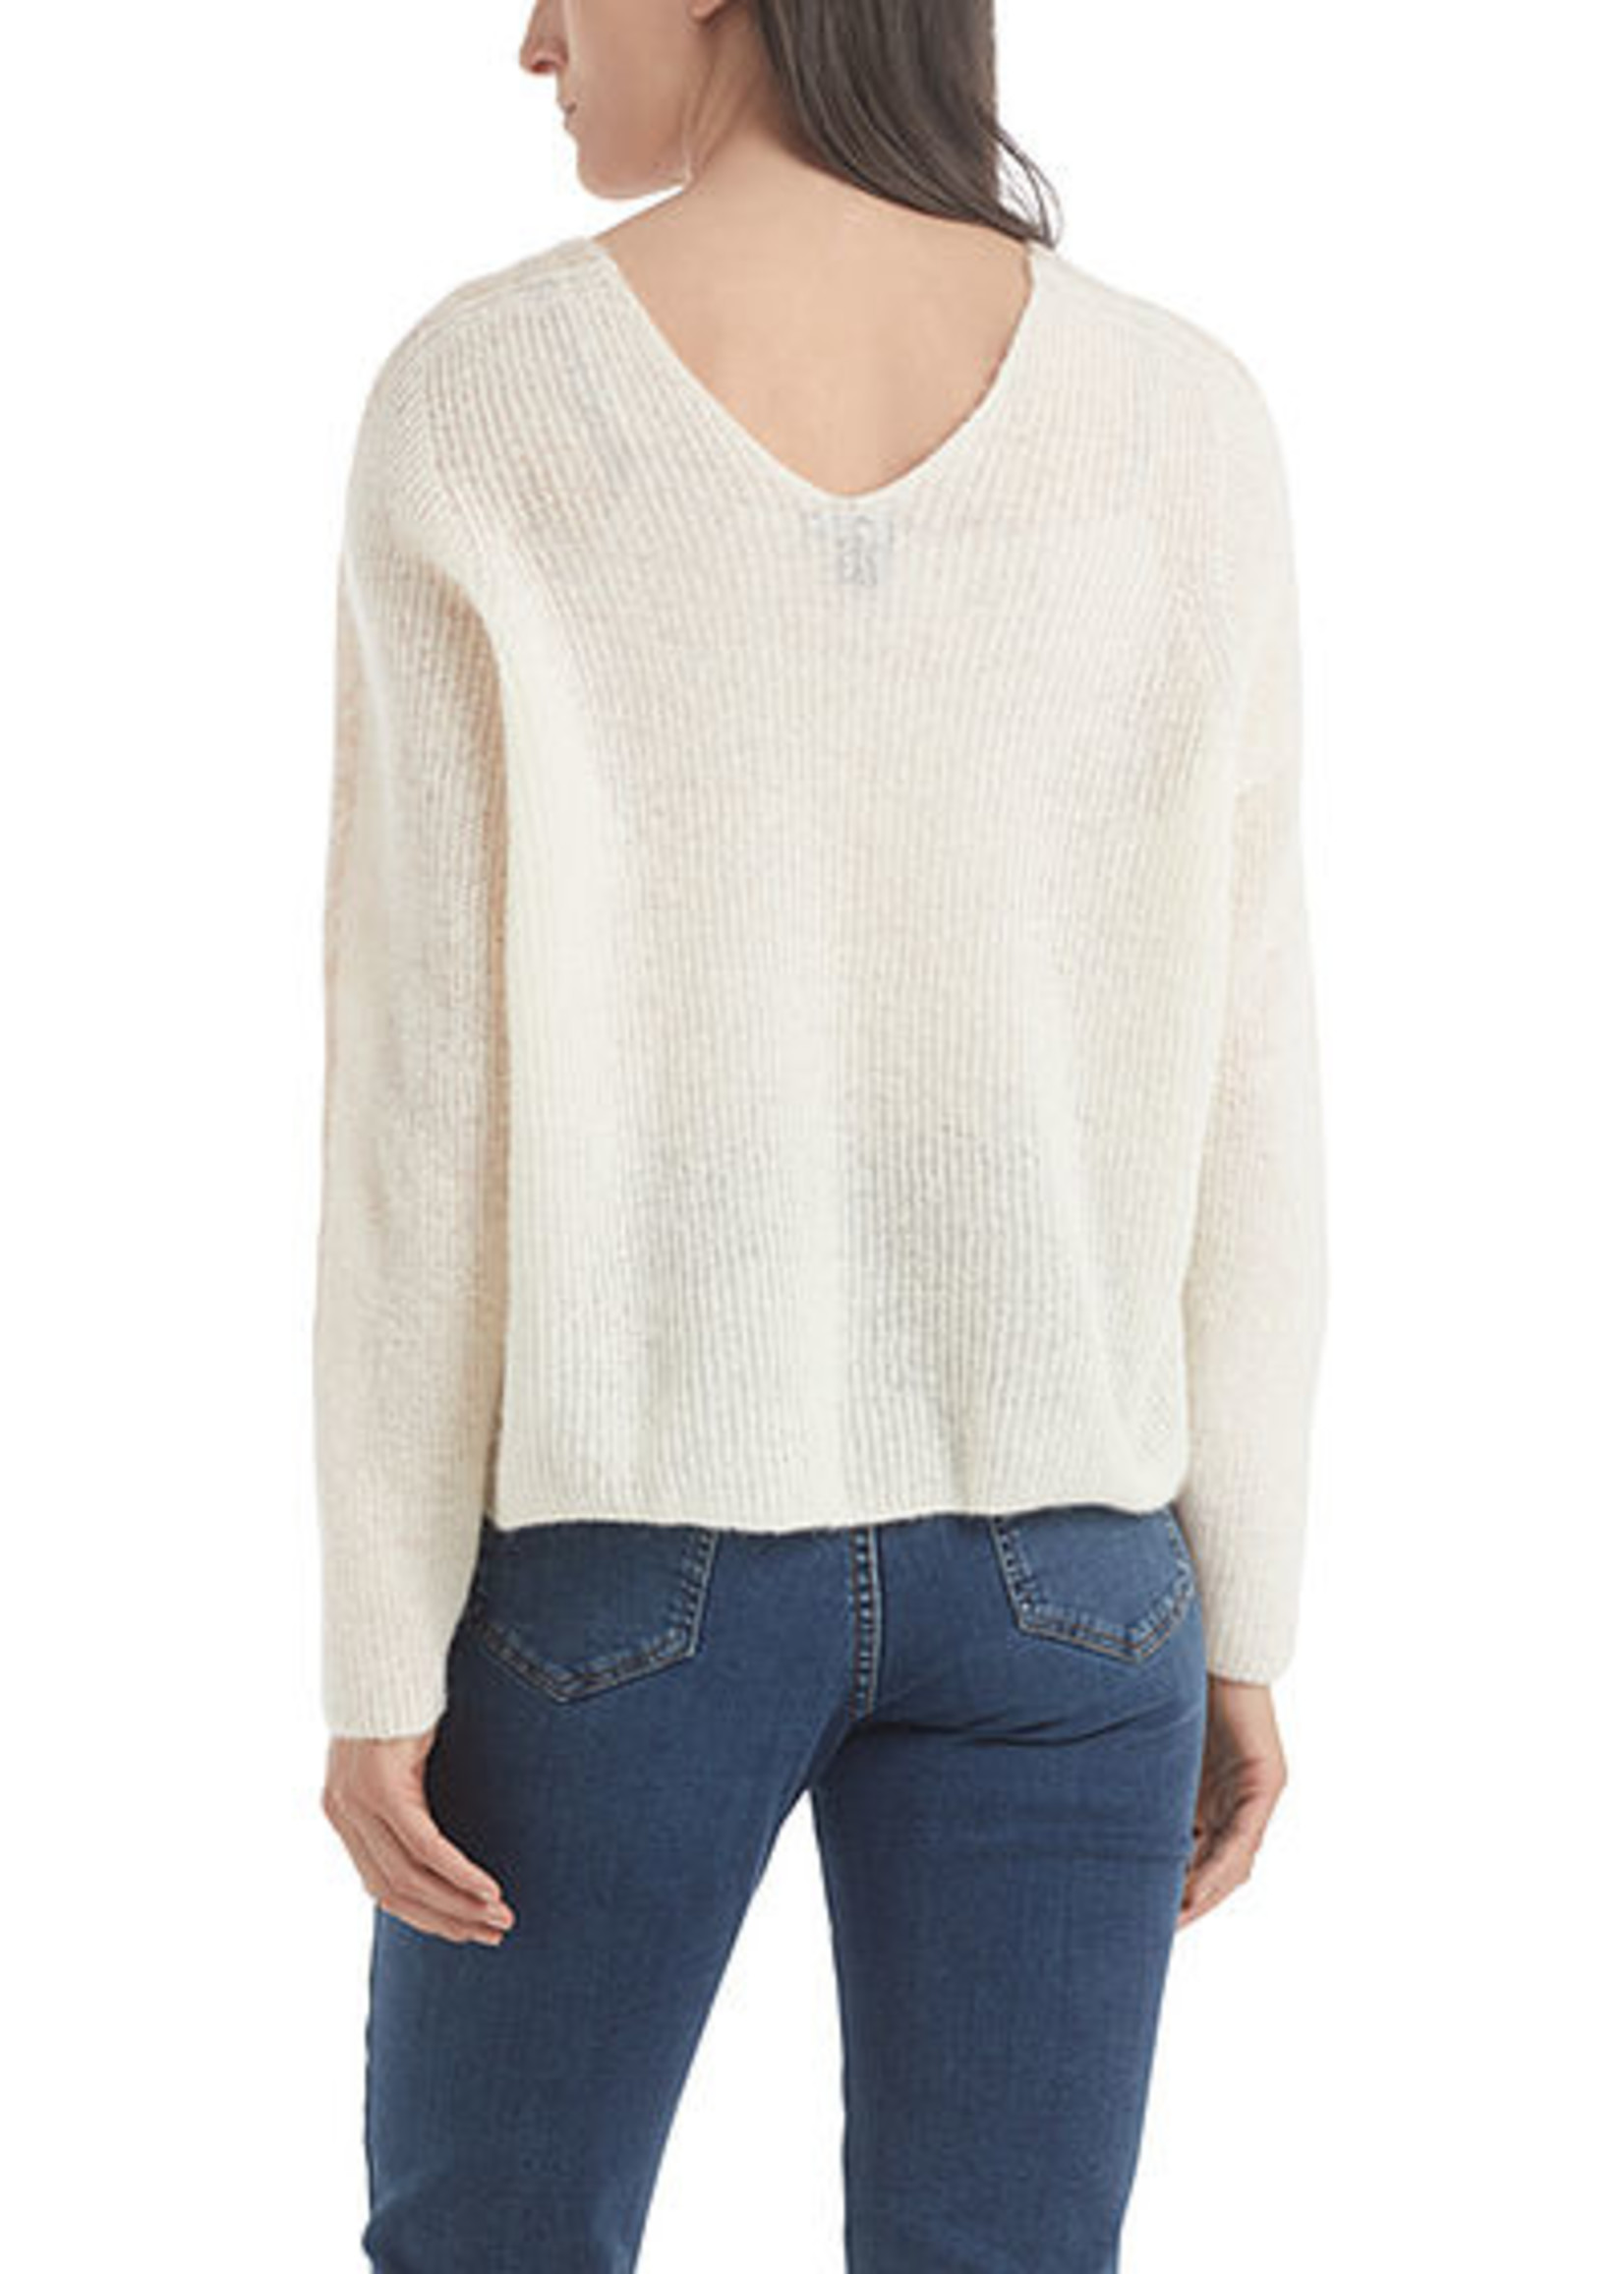 Marccain Sports Sweater RS 41.28 M22 light stone